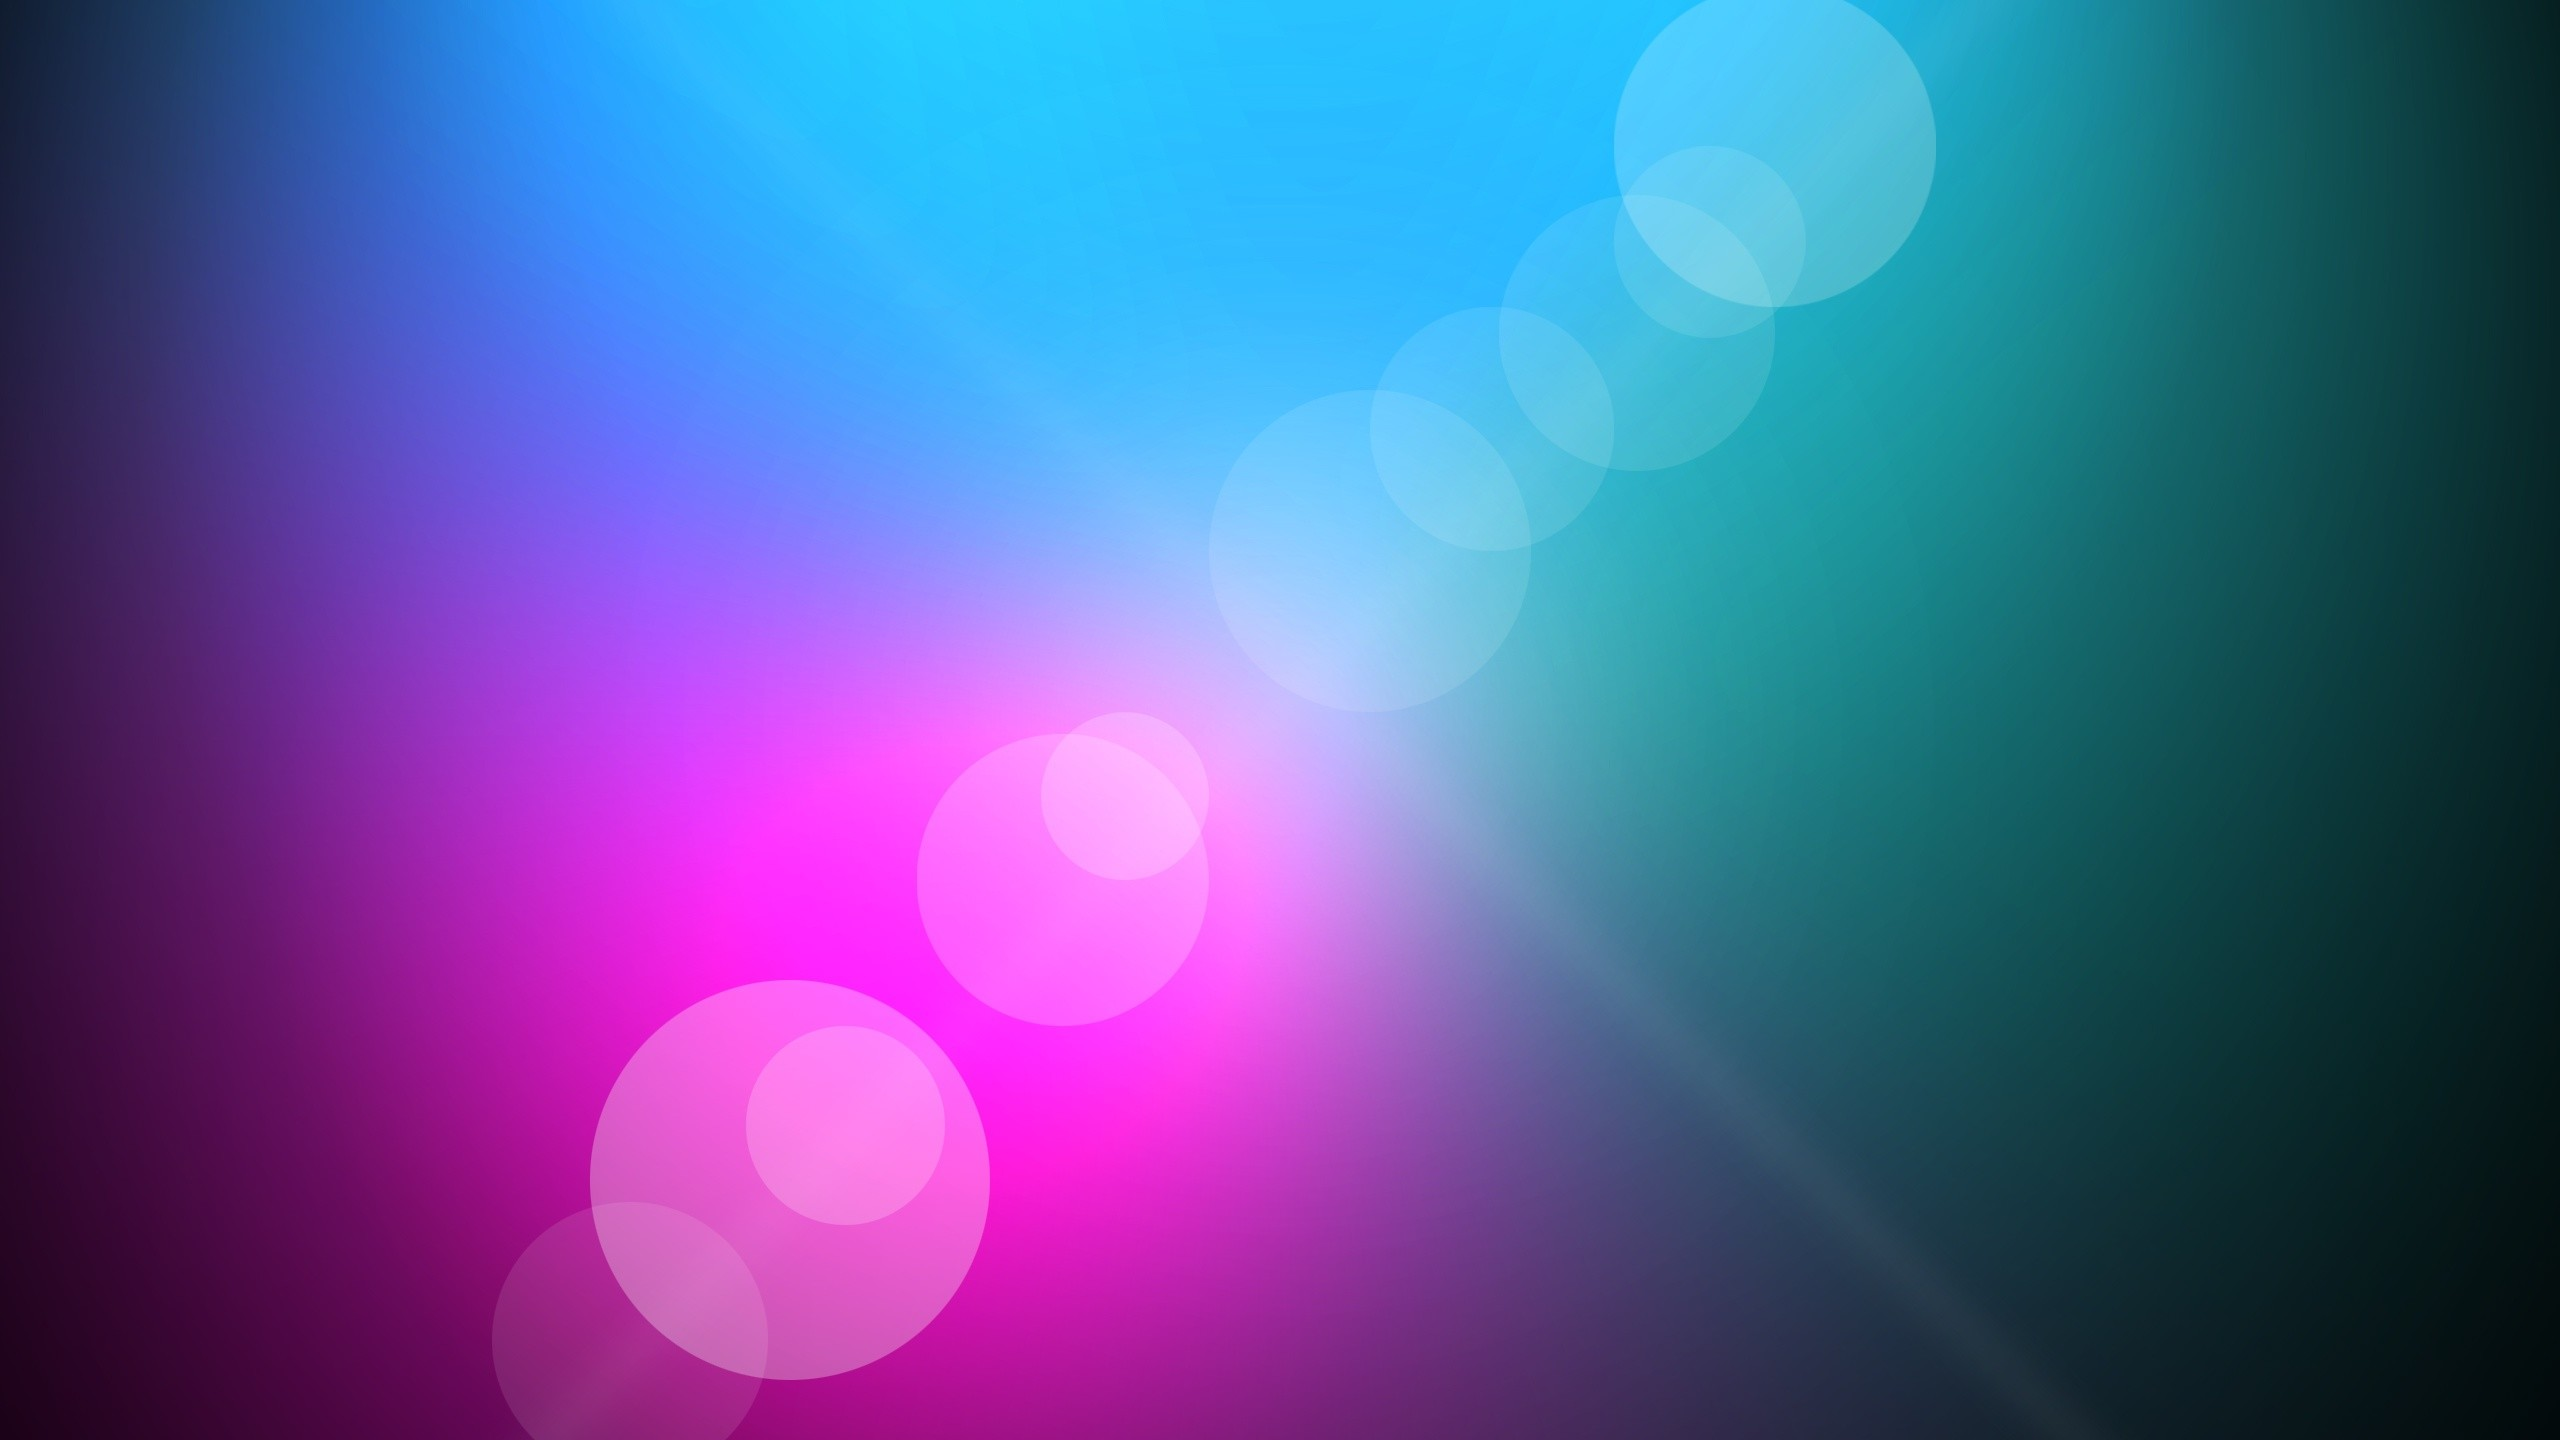 2560x1440 Blue and Pink Background